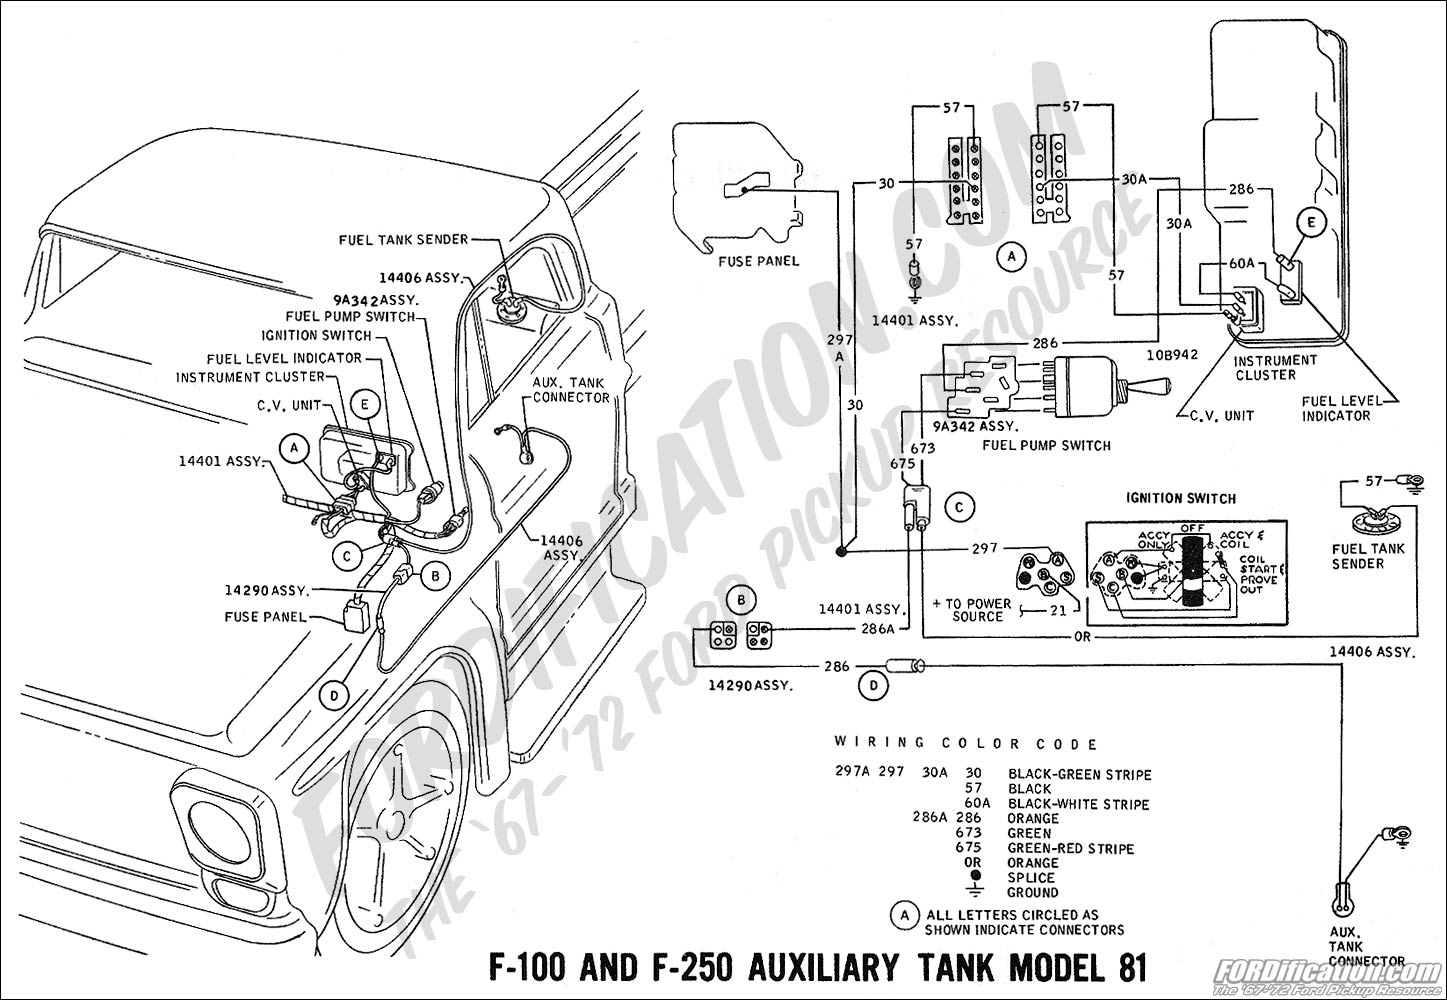 1981 Ford F 100 Fuse Box Diagram, 1981, Free Engine Image